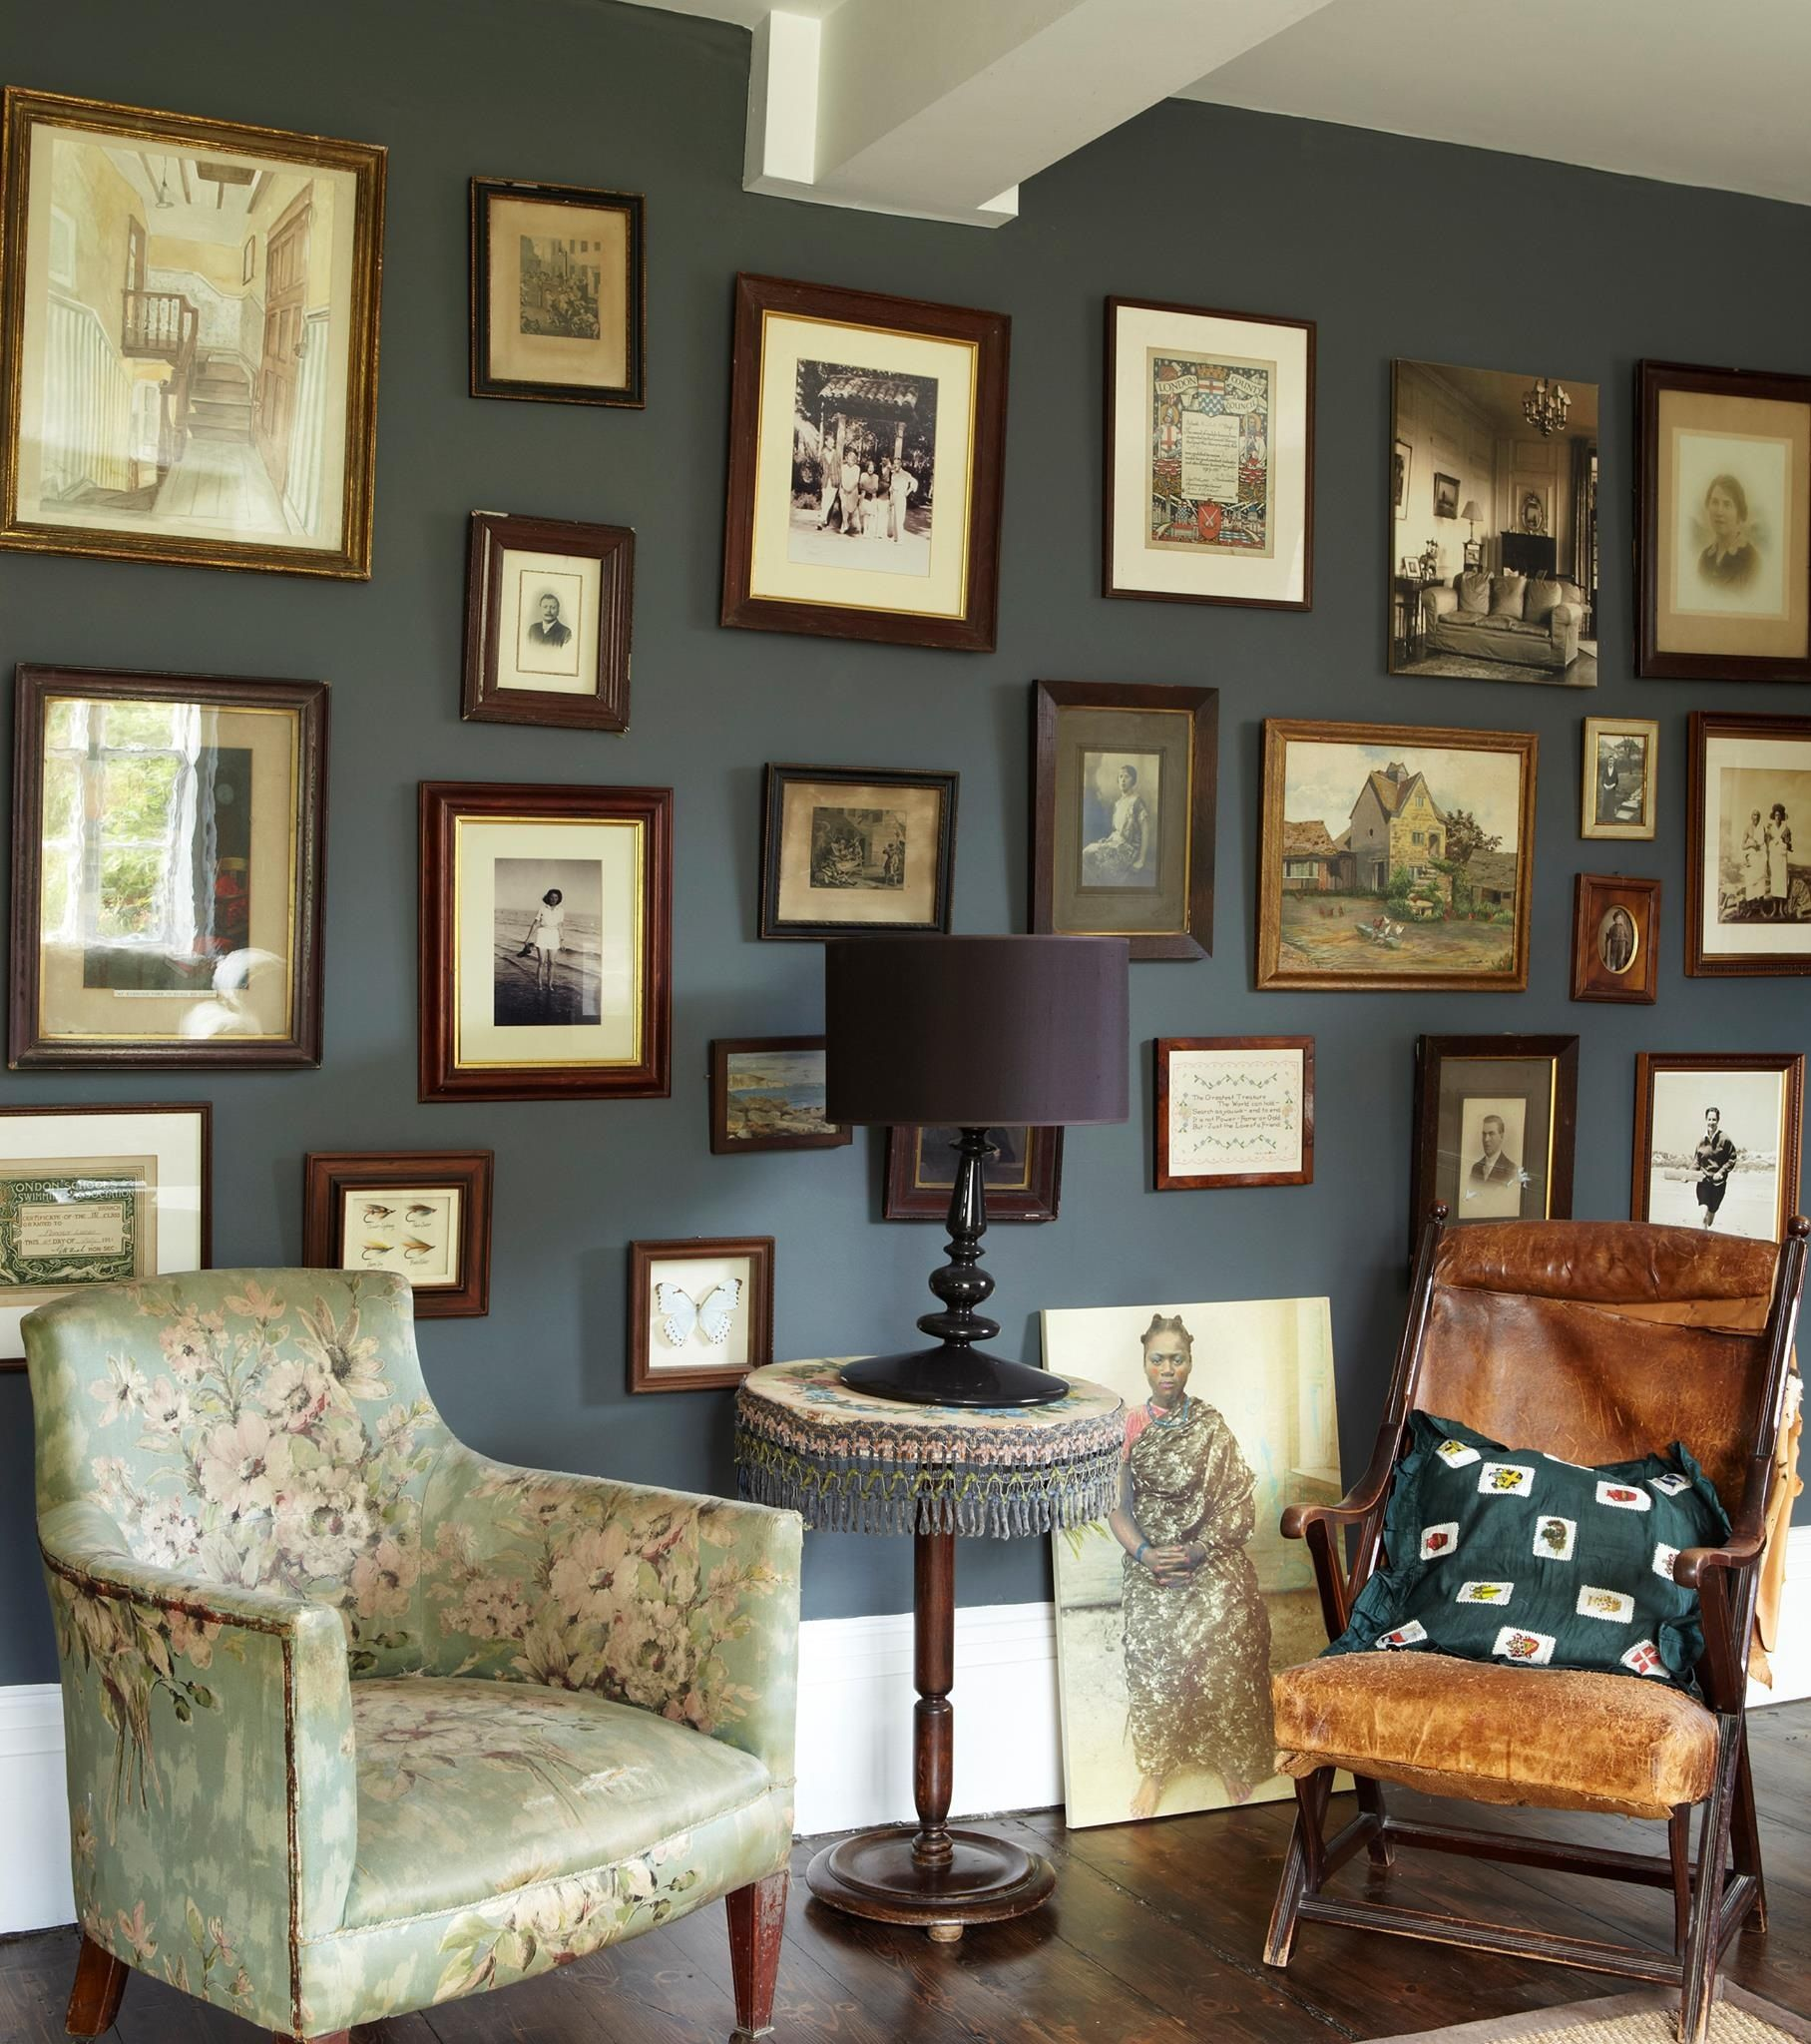 Railings paint in 2019 room farrow ball living room for Farrow and ball railings living room